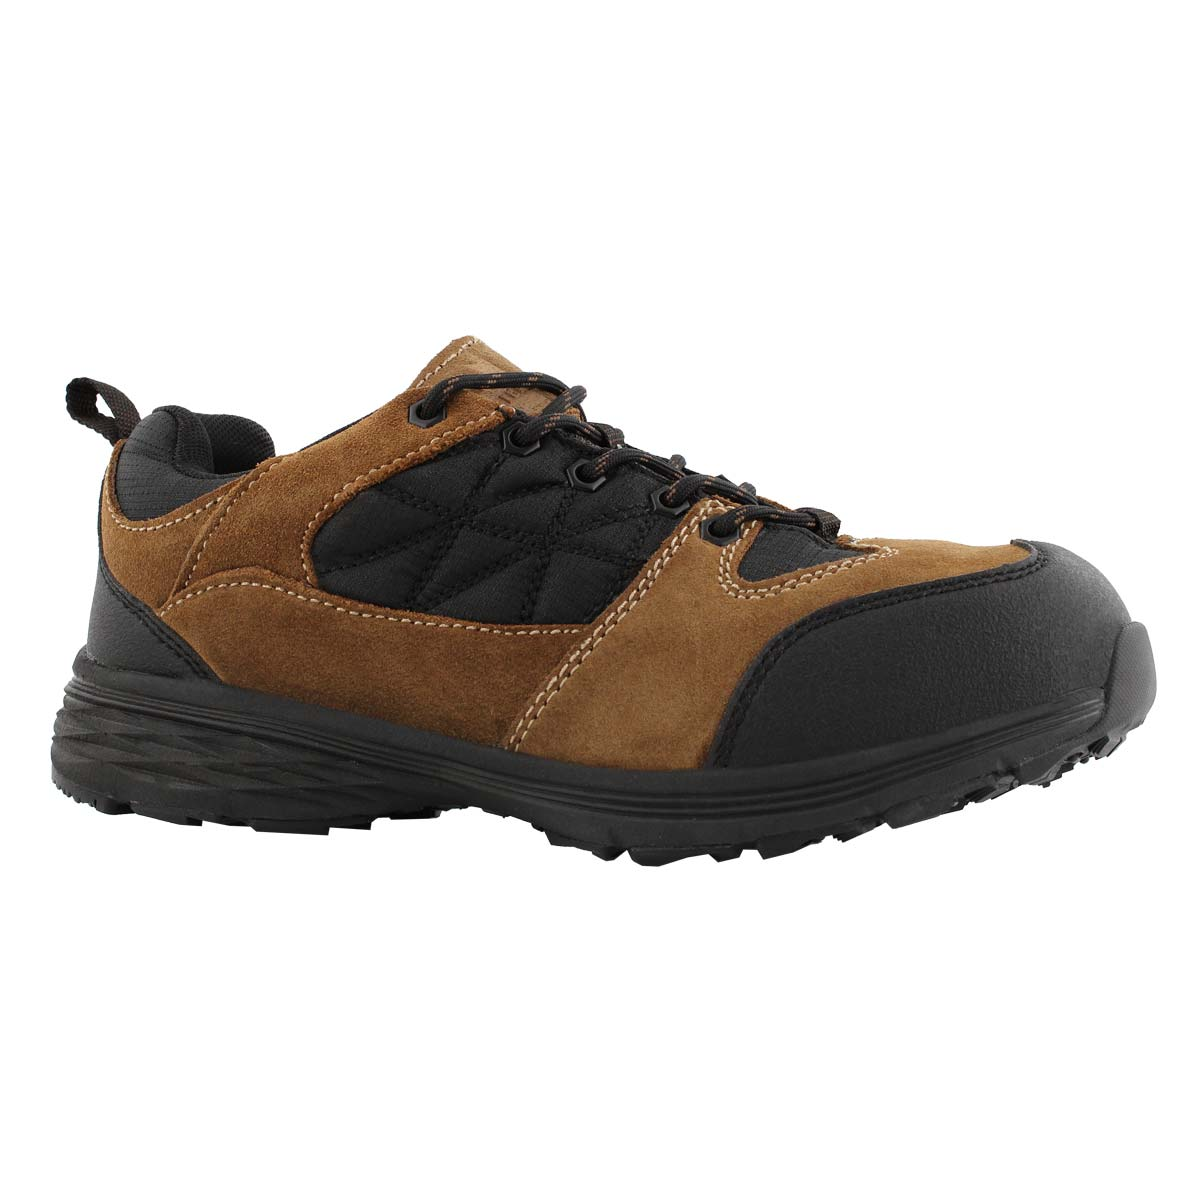 Mns Flash brown lace up CSA safety shoe